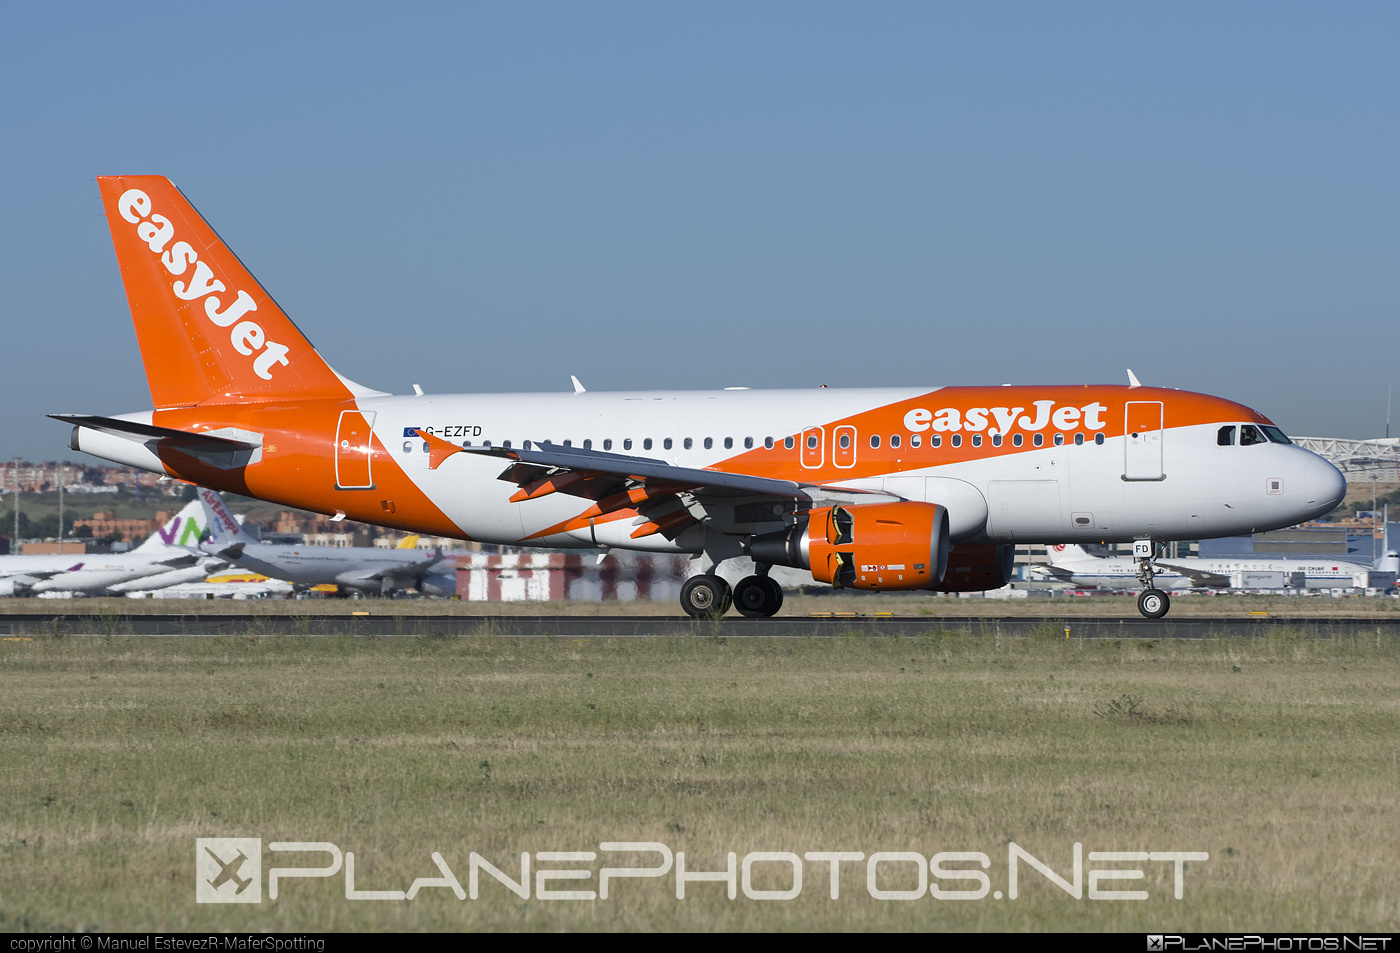 Airbus A319-111 - G-EZFD operated by easyJet #a319 #a320family #airbus #airbus319 #easyjet